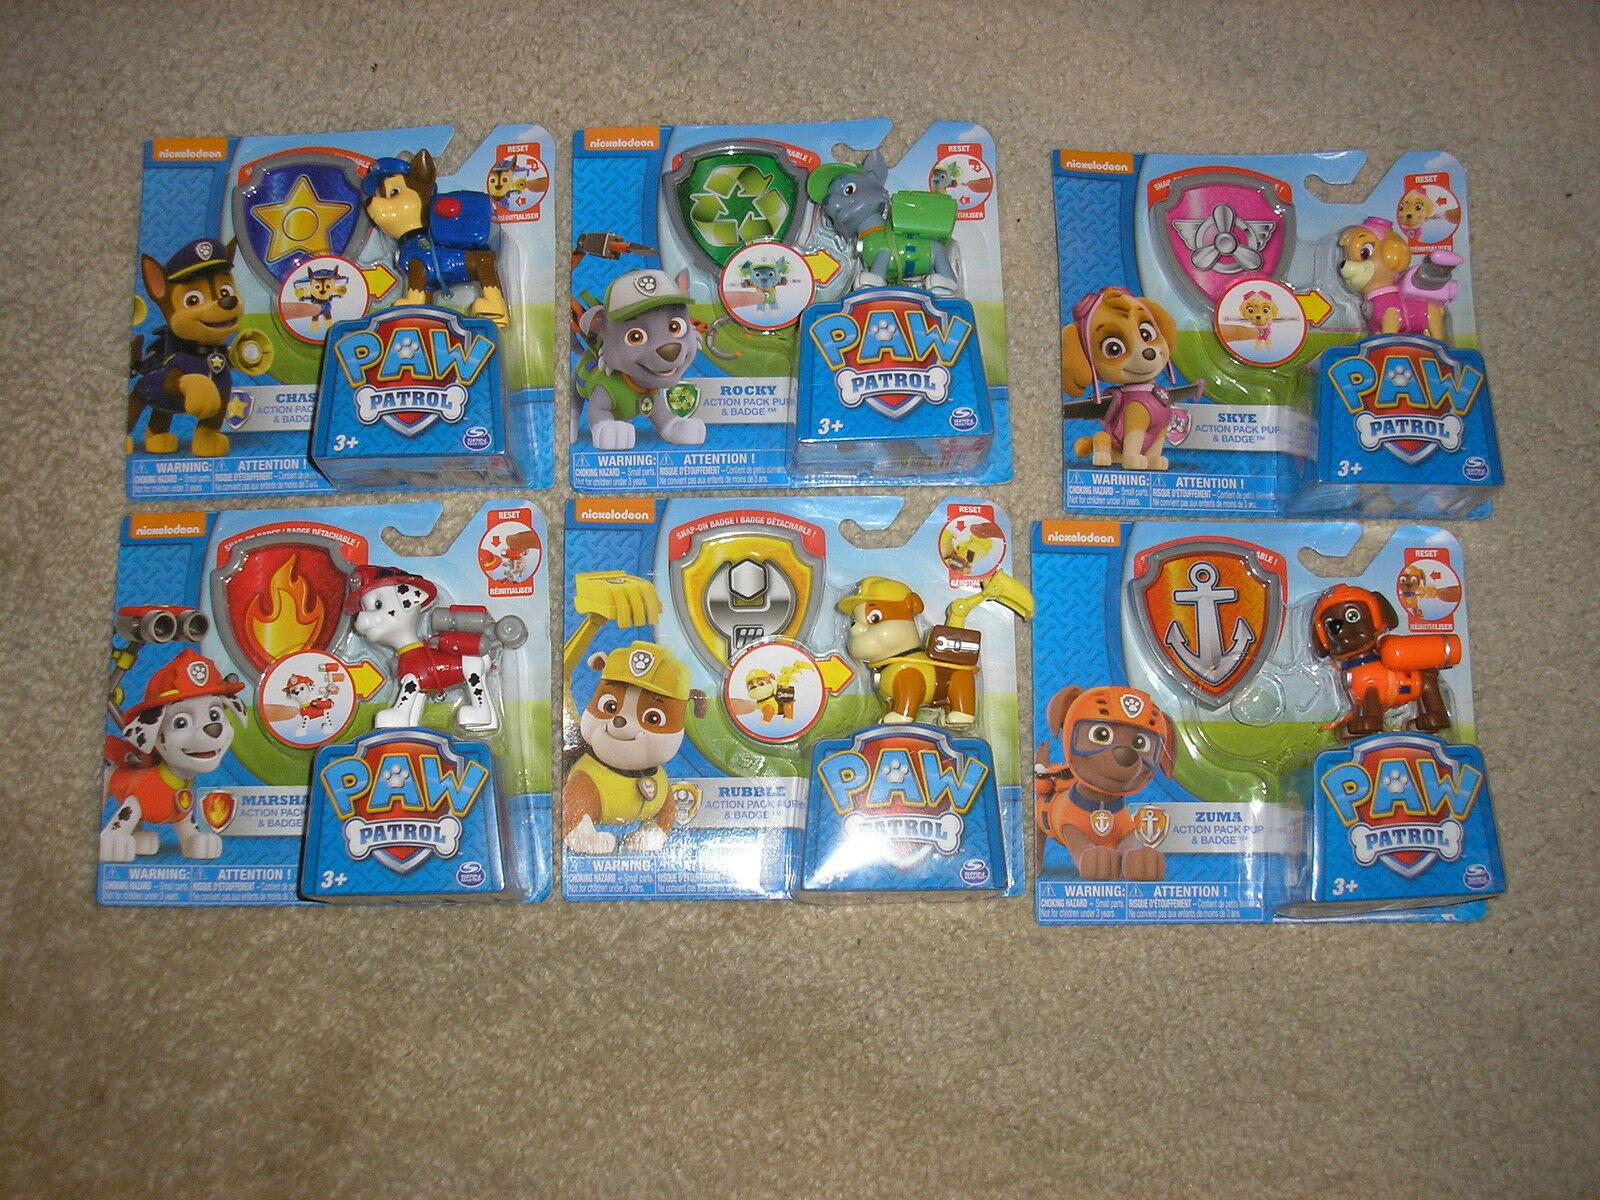 Brand New Paw Patrol Action Pack Pup & Badge Sets Zuma Rocky Skye Rubble Chase